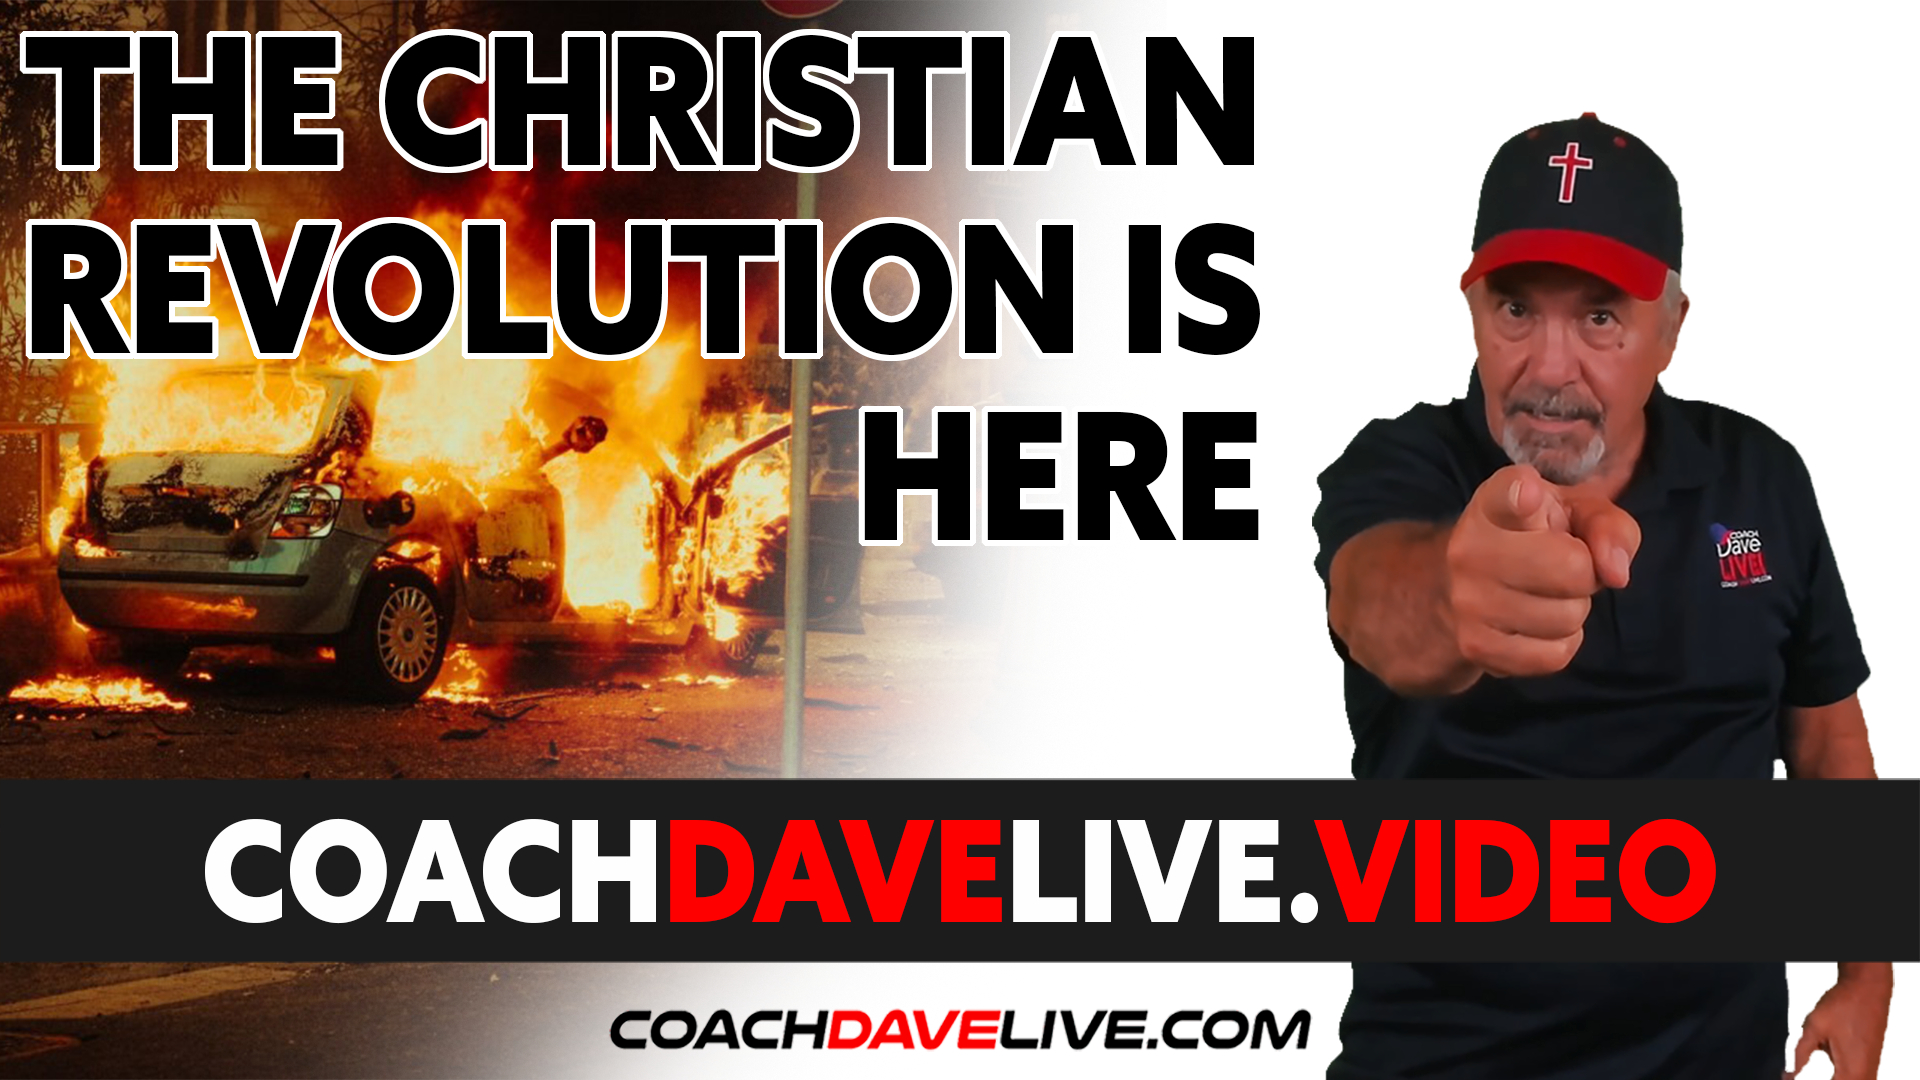 Coach Dave LIVE | 8-31-2021 | THE CHRISTIAN REVOLUTION IS HERE